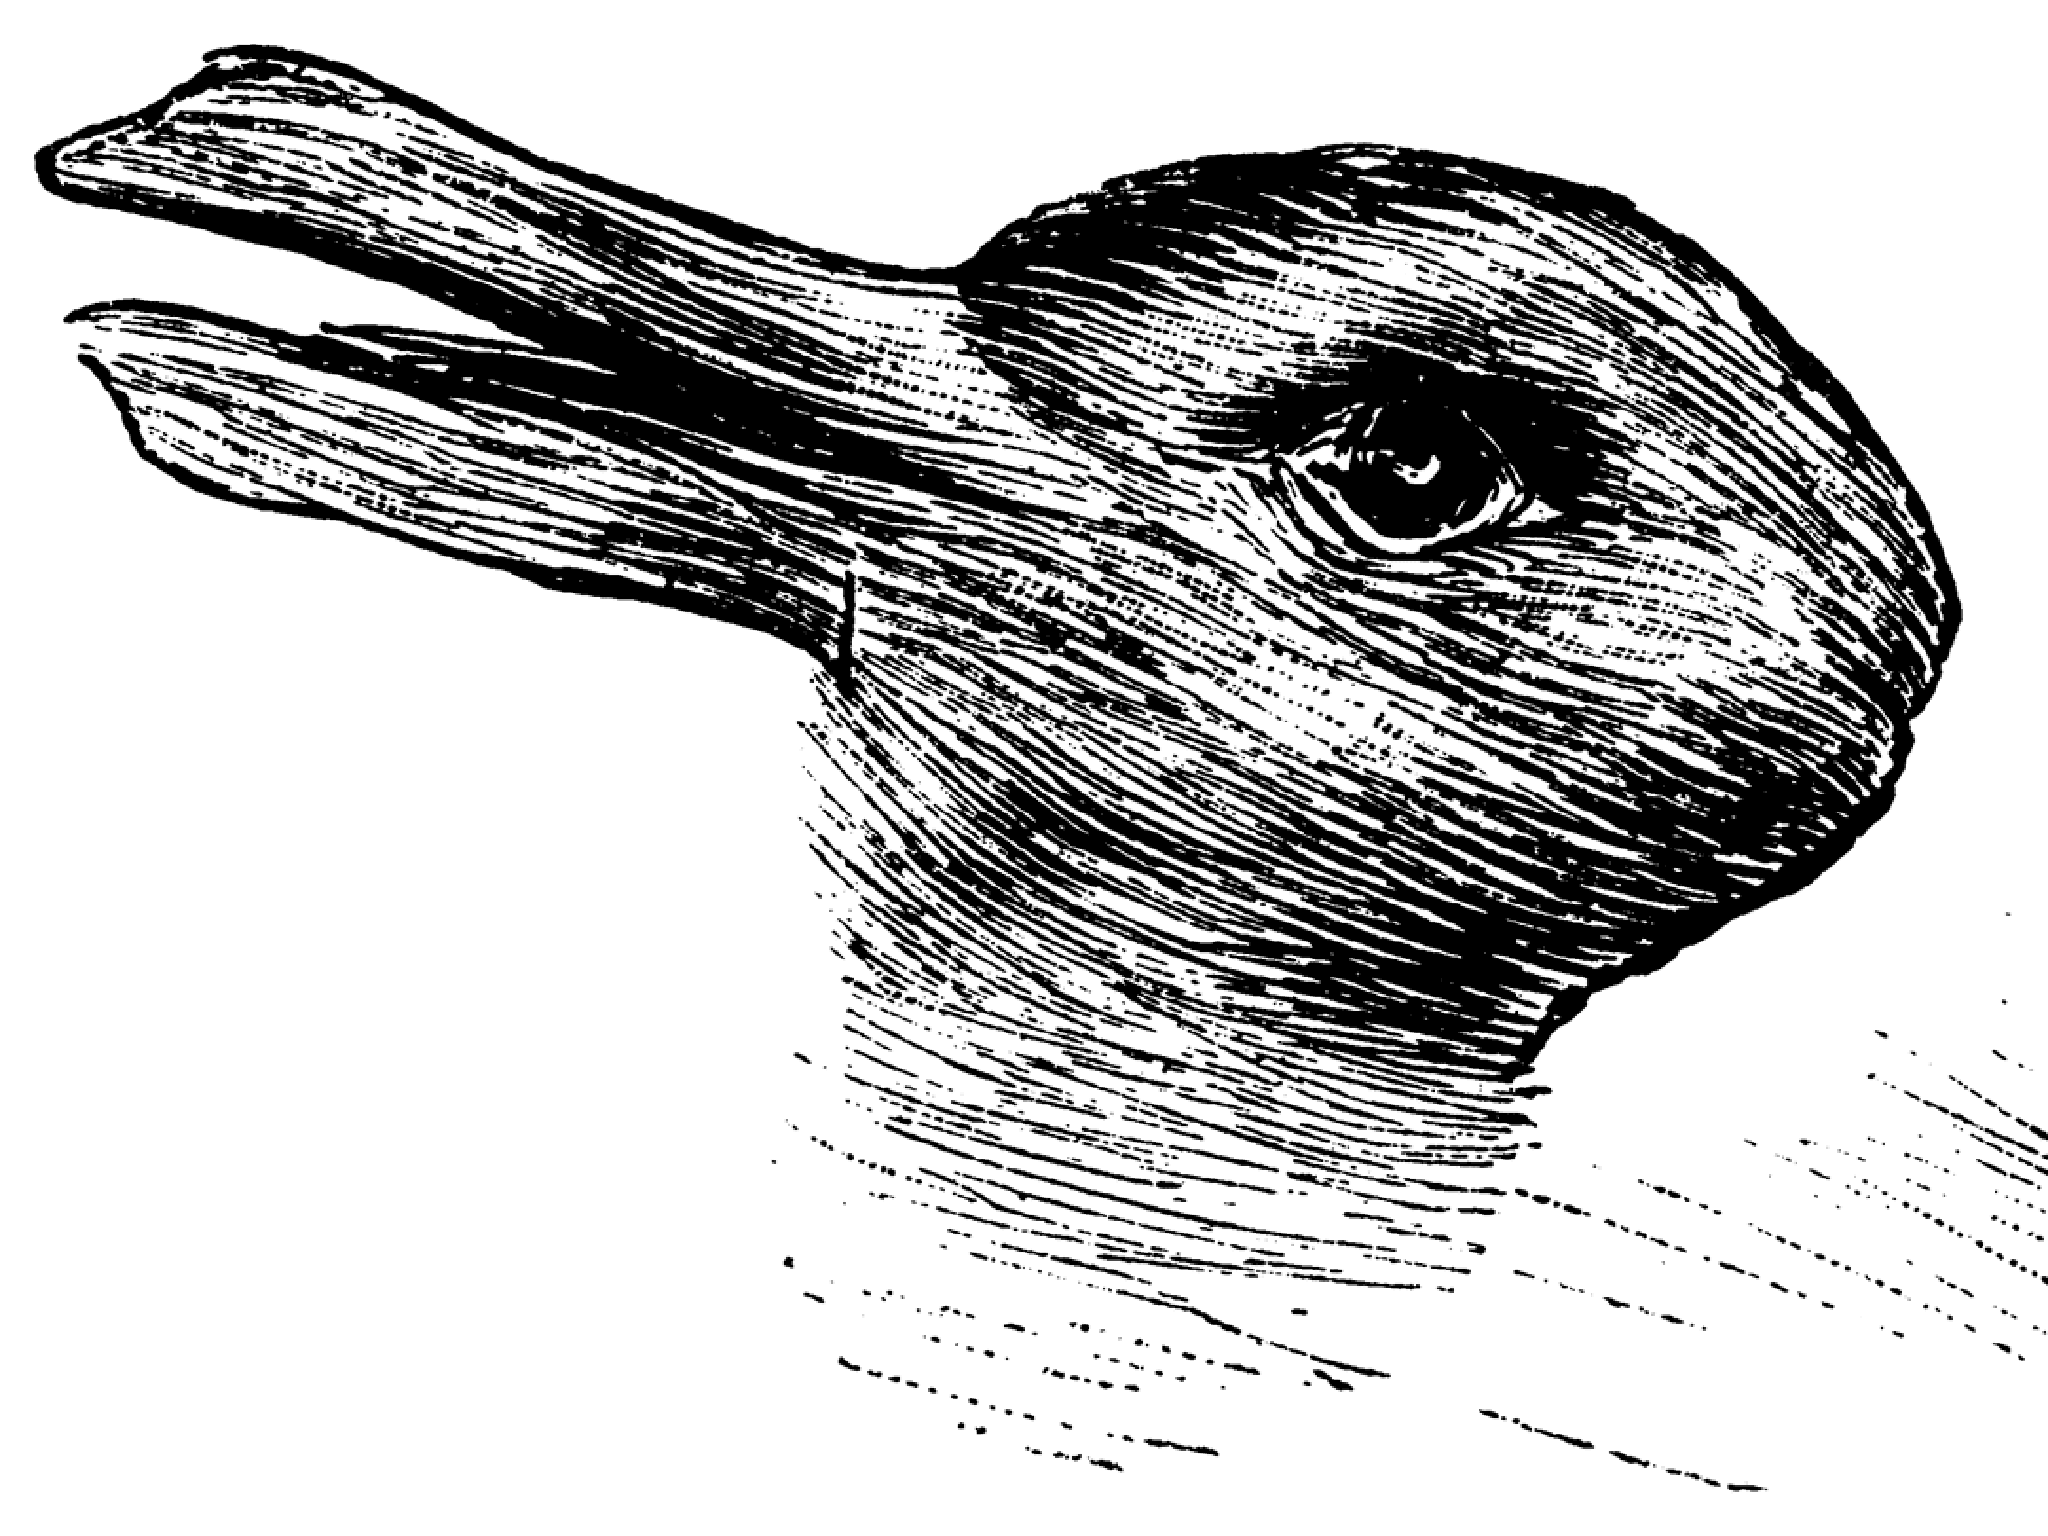 duck or rabbit the 100 year old optical illusion that could tell